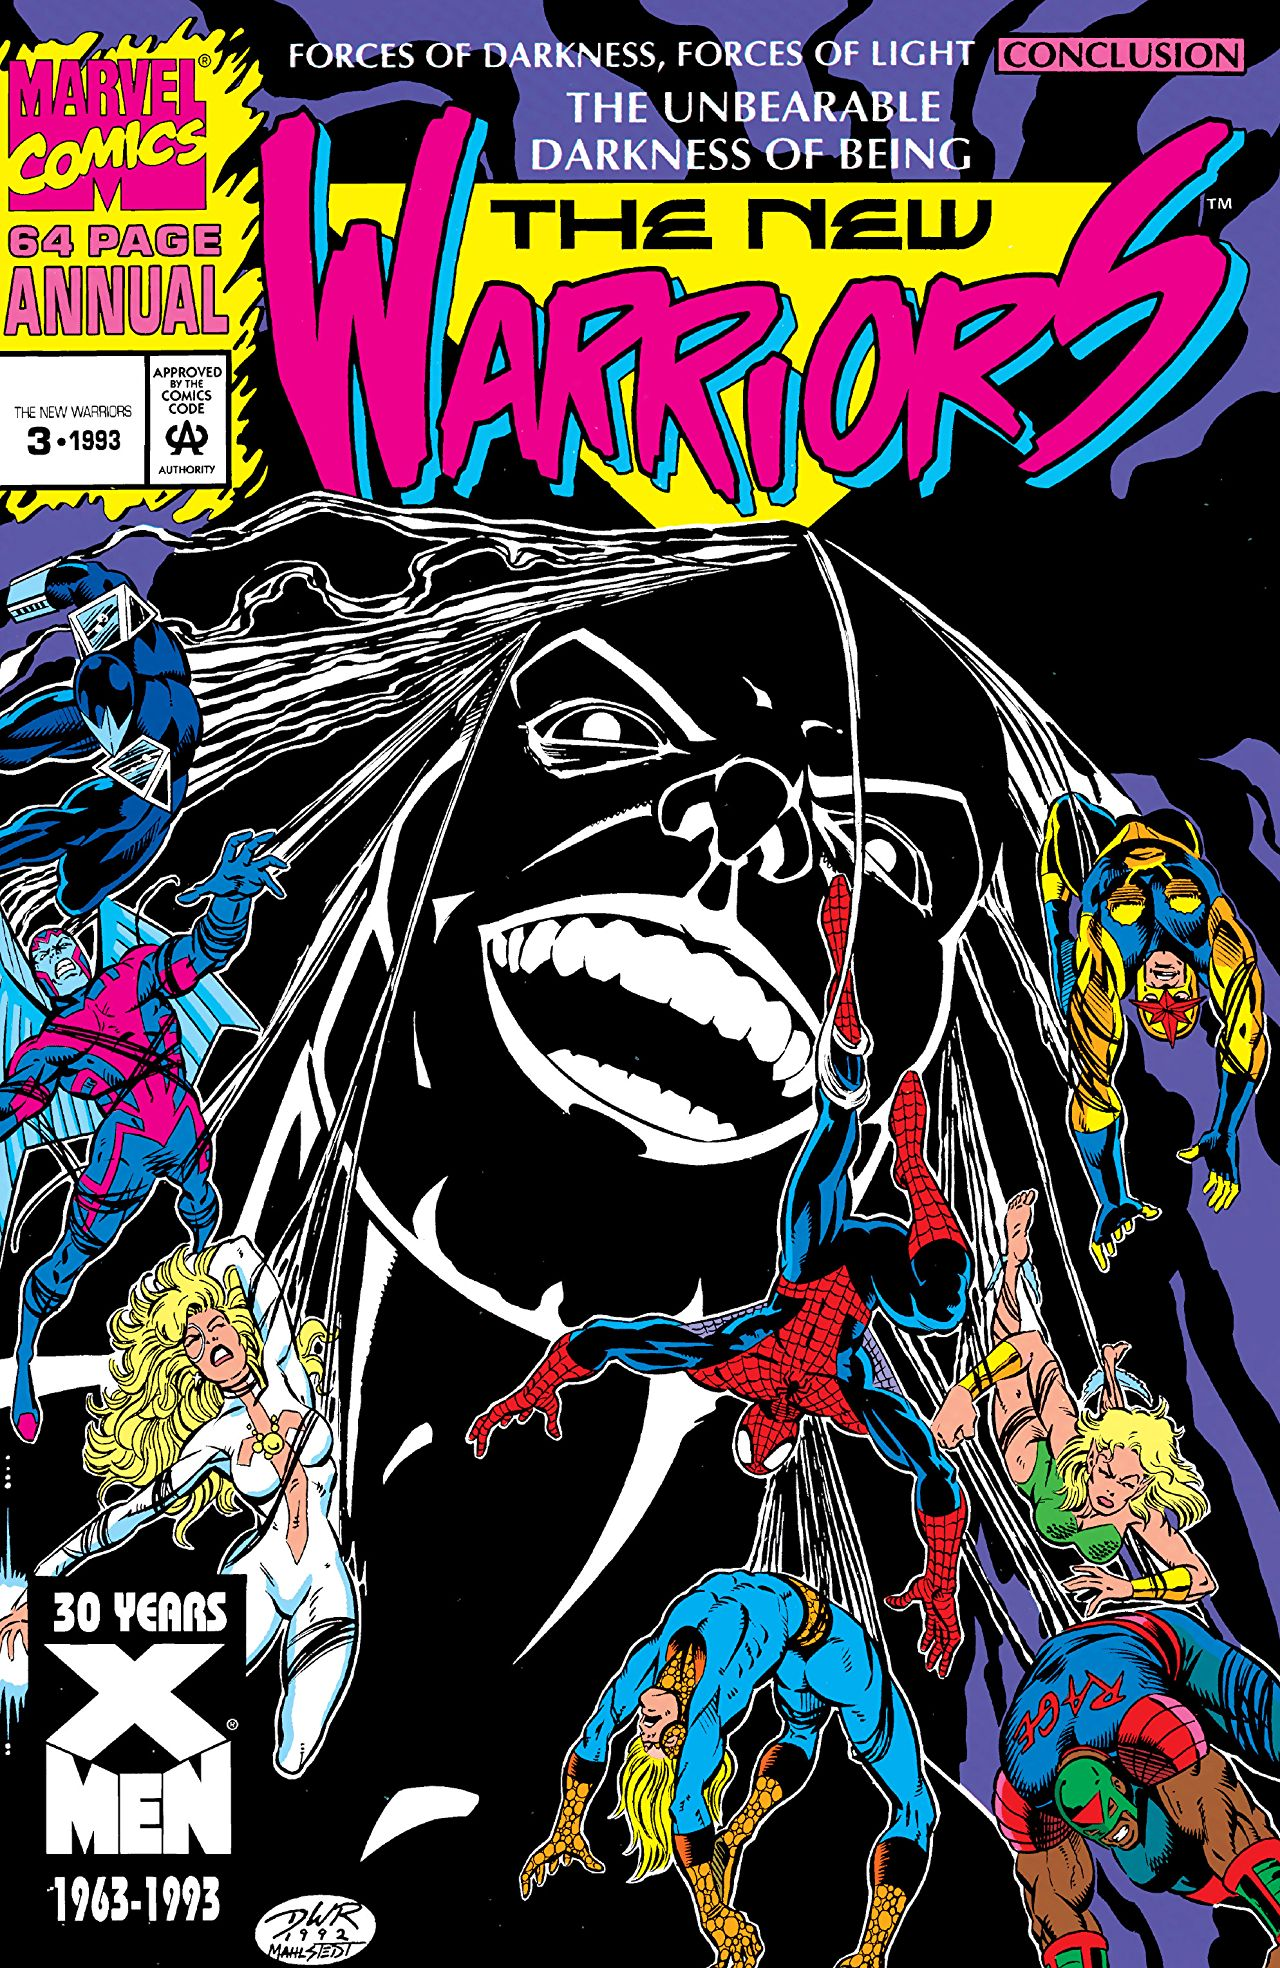 3 Reasons Why: 'New Warriors: Darkness and Light' harnesses 90s comics and culture